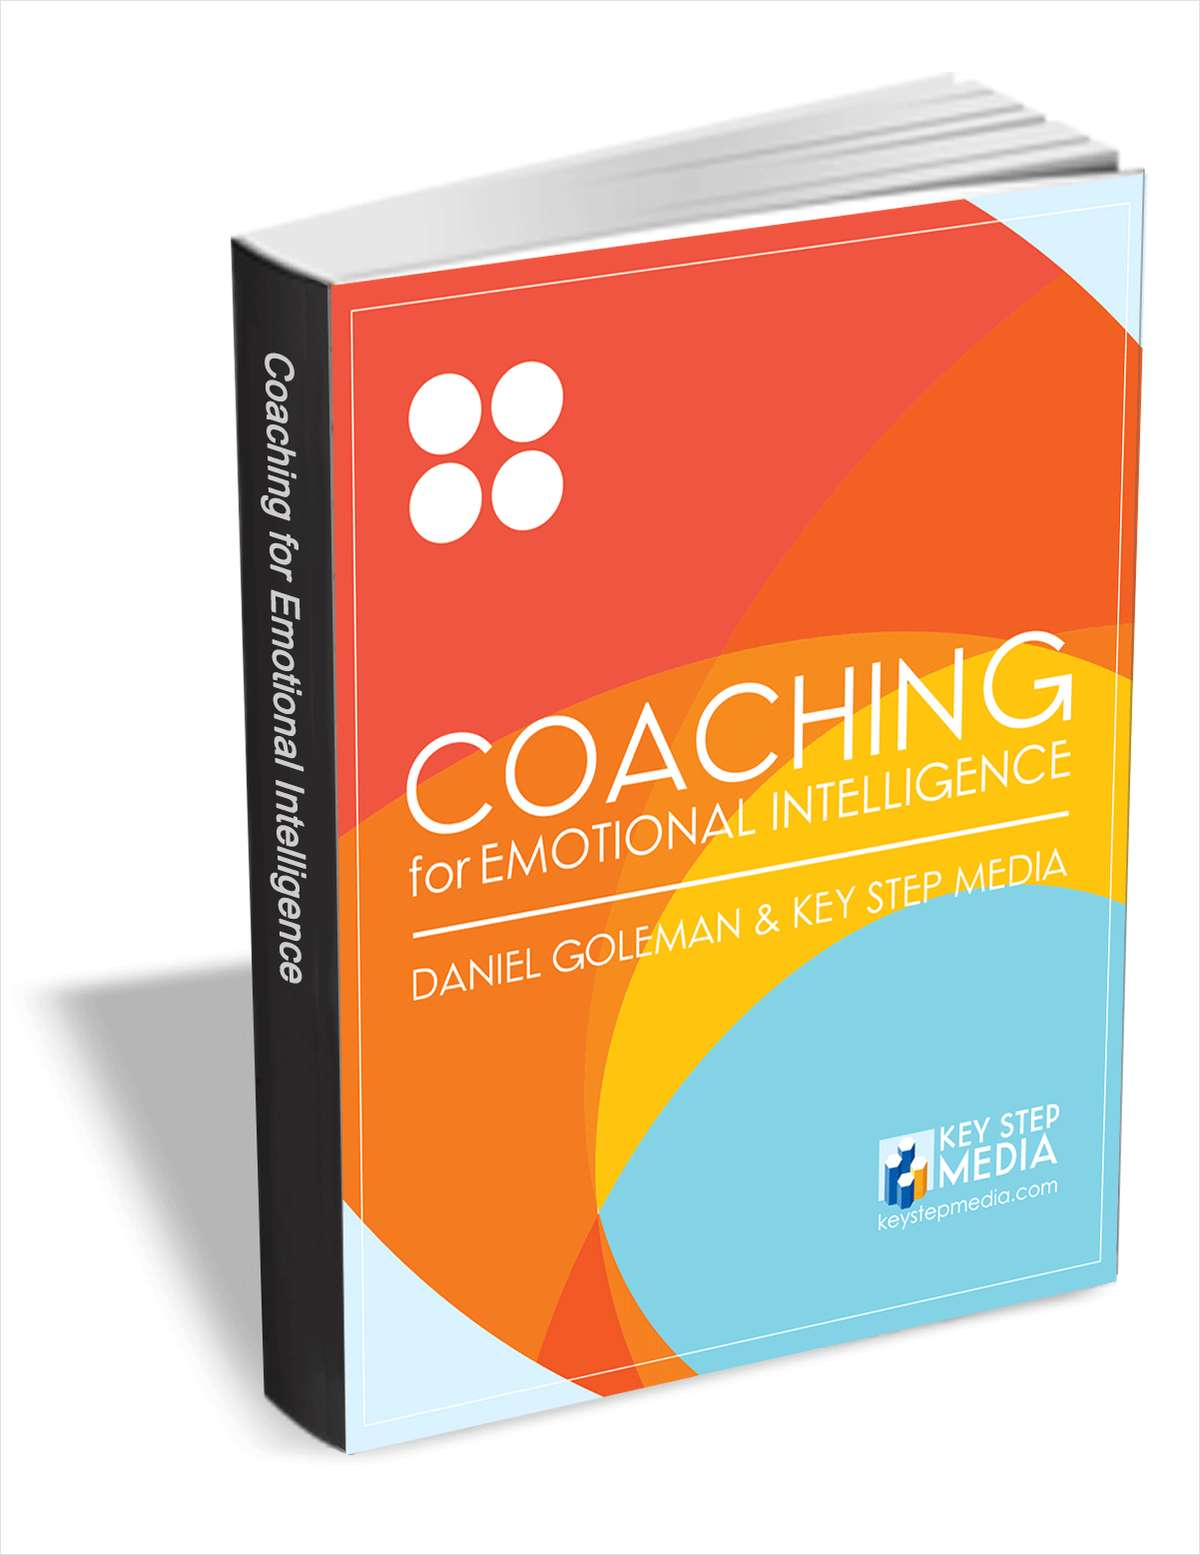 Coaching for Emotional Intelligence